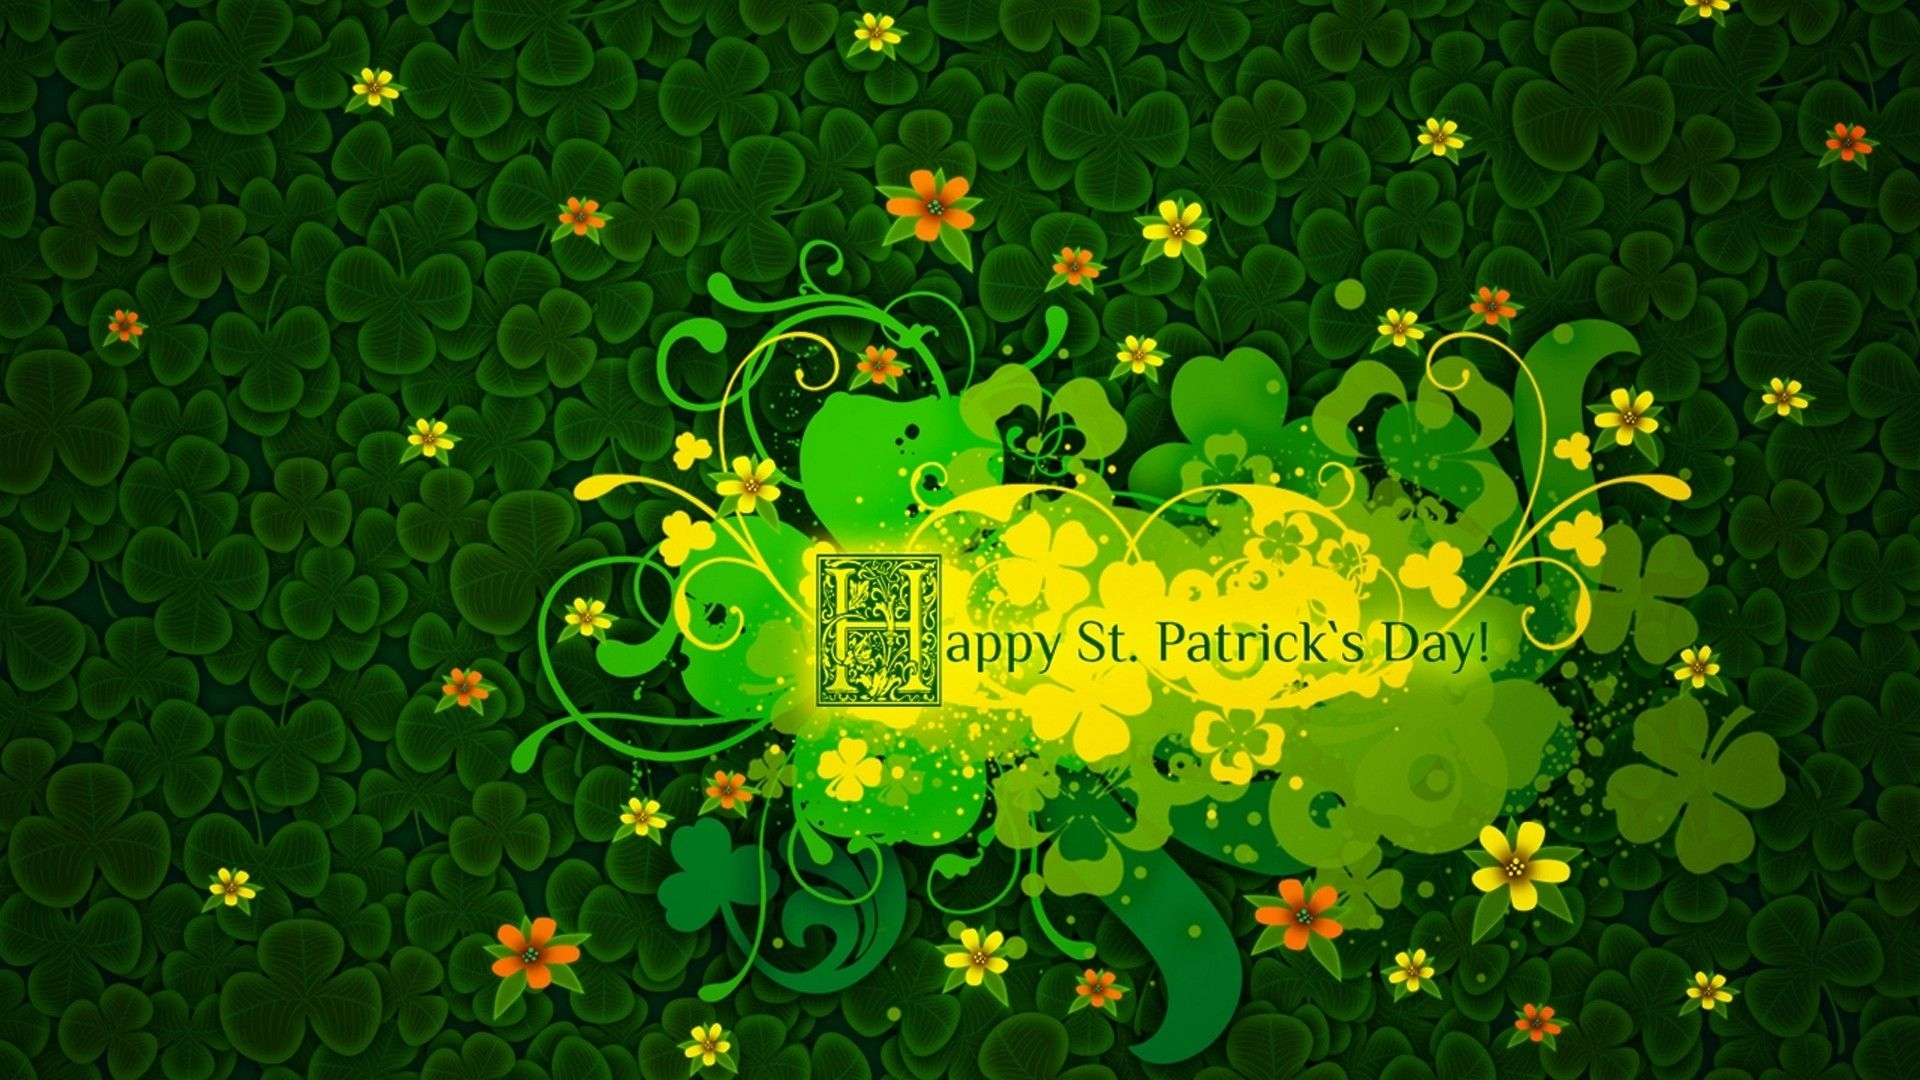 st. patrick's day wallpaper | holidays wallpaper | pinterest